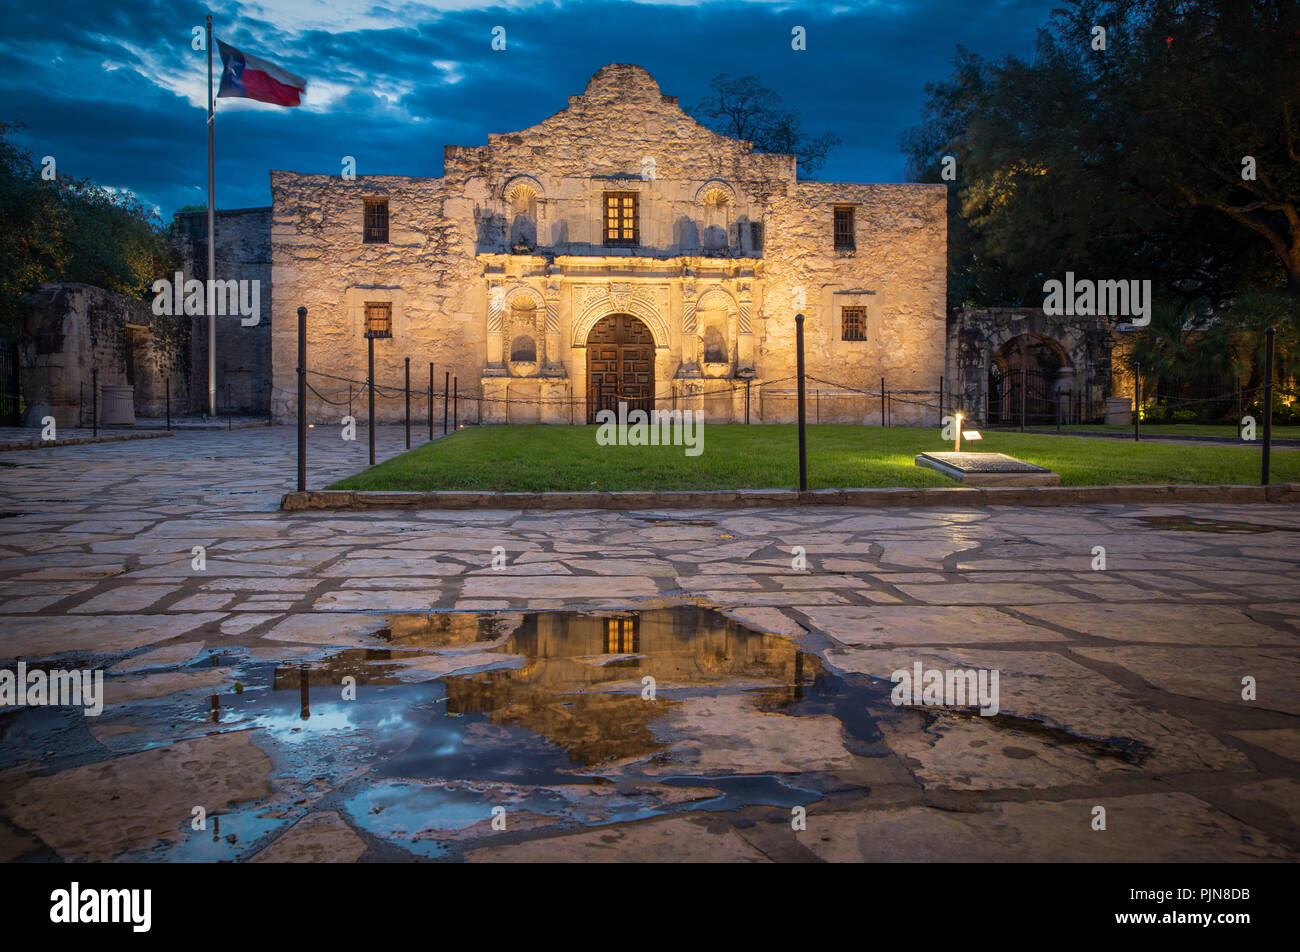 The Alamo is an old Spanish mission (like a church built by Catholic missionaries to minister to the natives) that is in what is now San Antonio, Texa - Stock Image